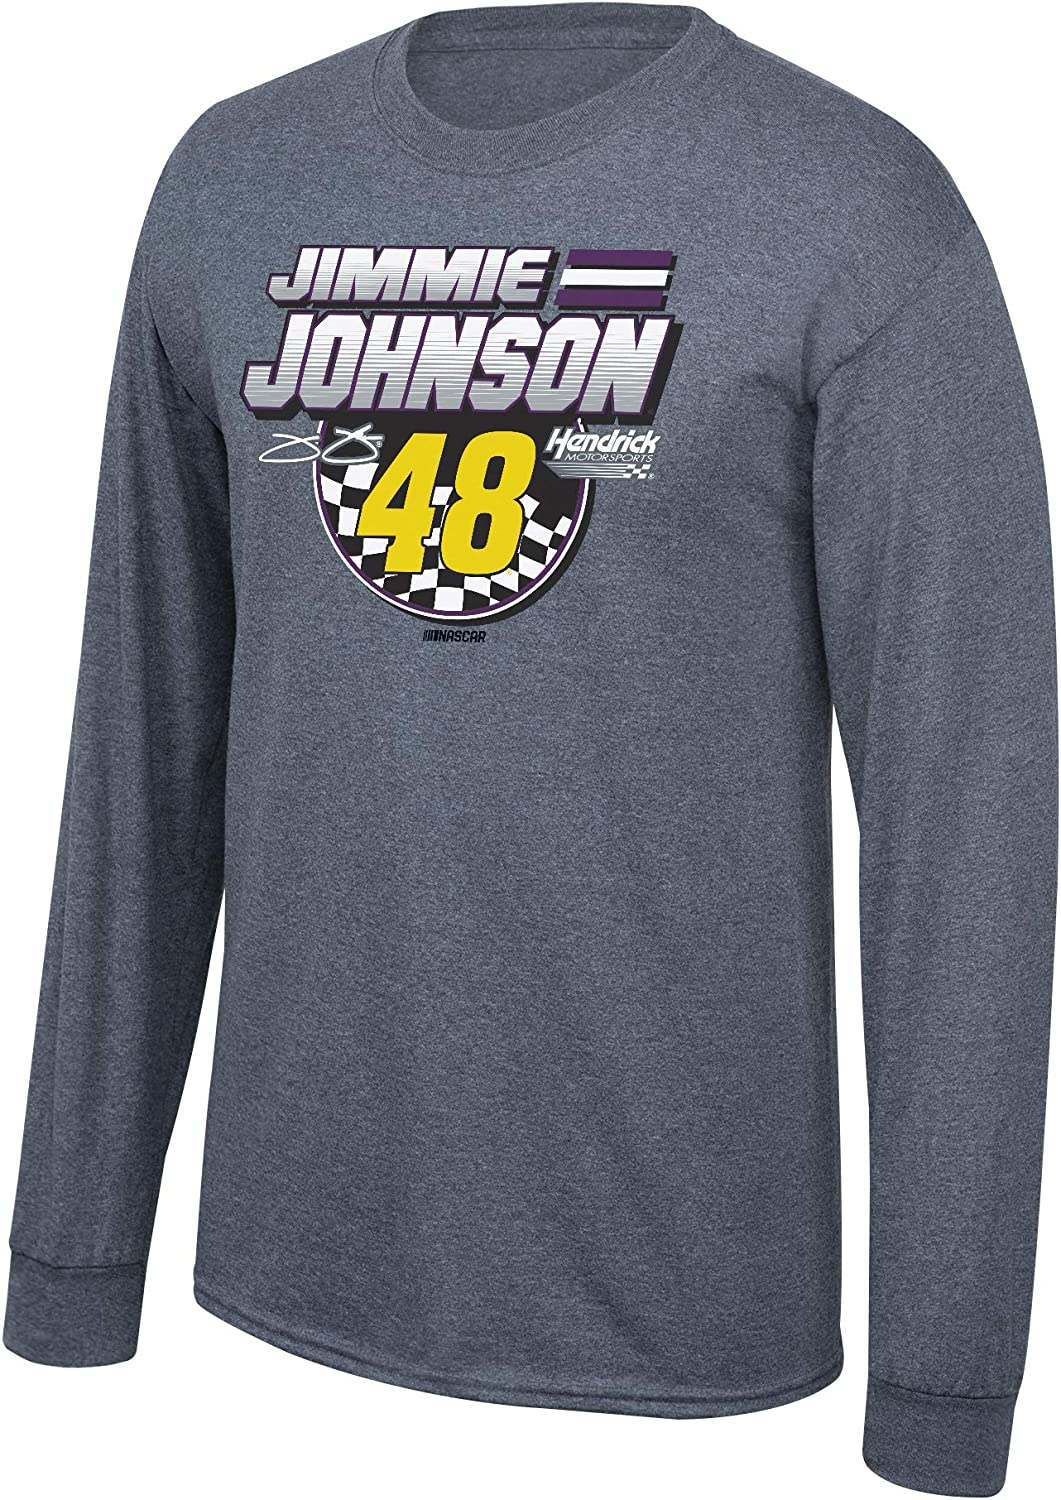 NASCAR Driver Merchandise Fan Favorite Checkered Flag Cotton Long Sleeve Tee